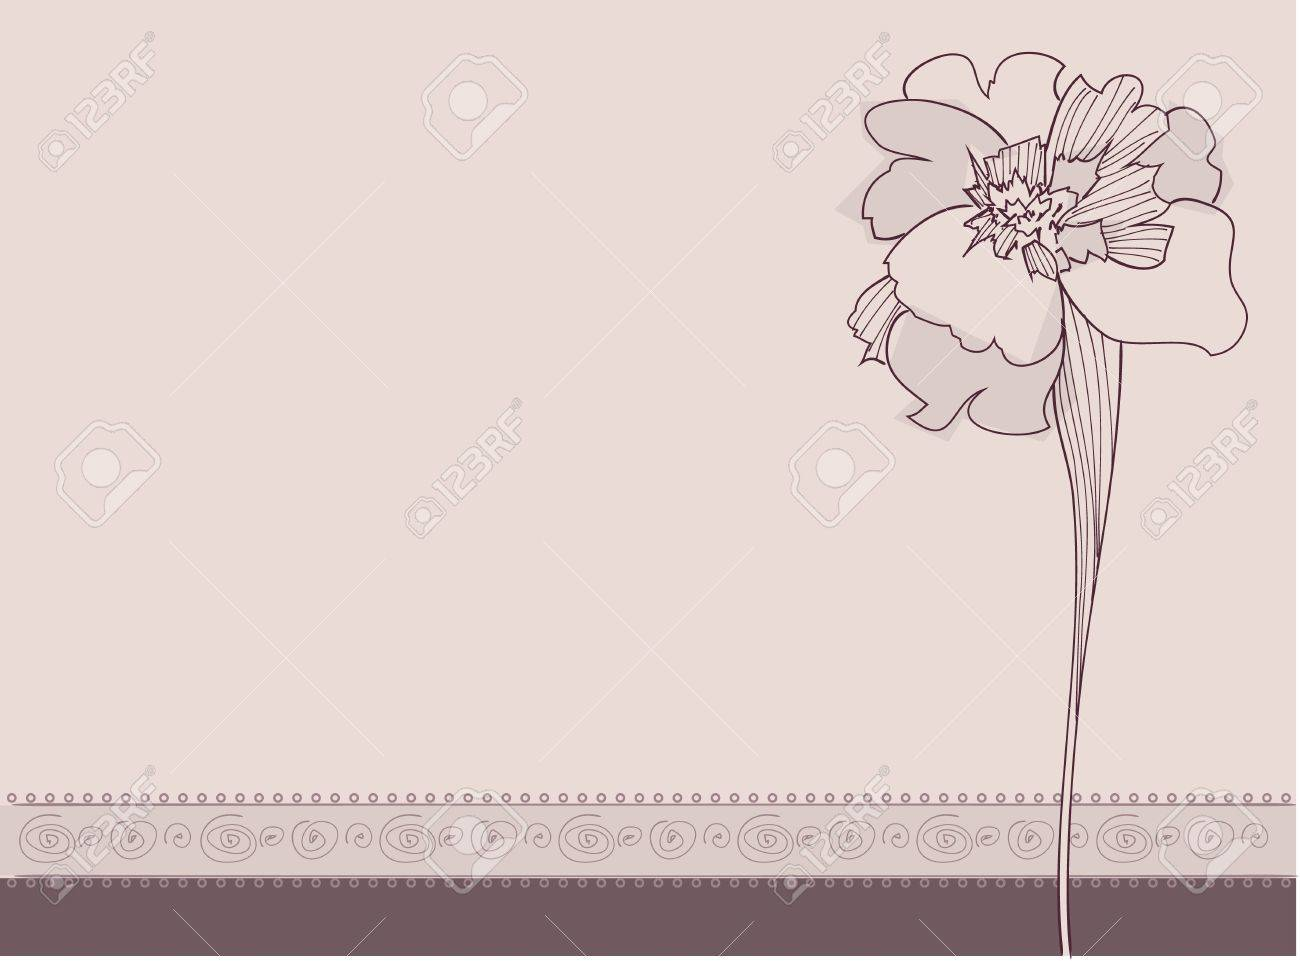 Illustration of Ornament Flowers Stock Vector - 10972064